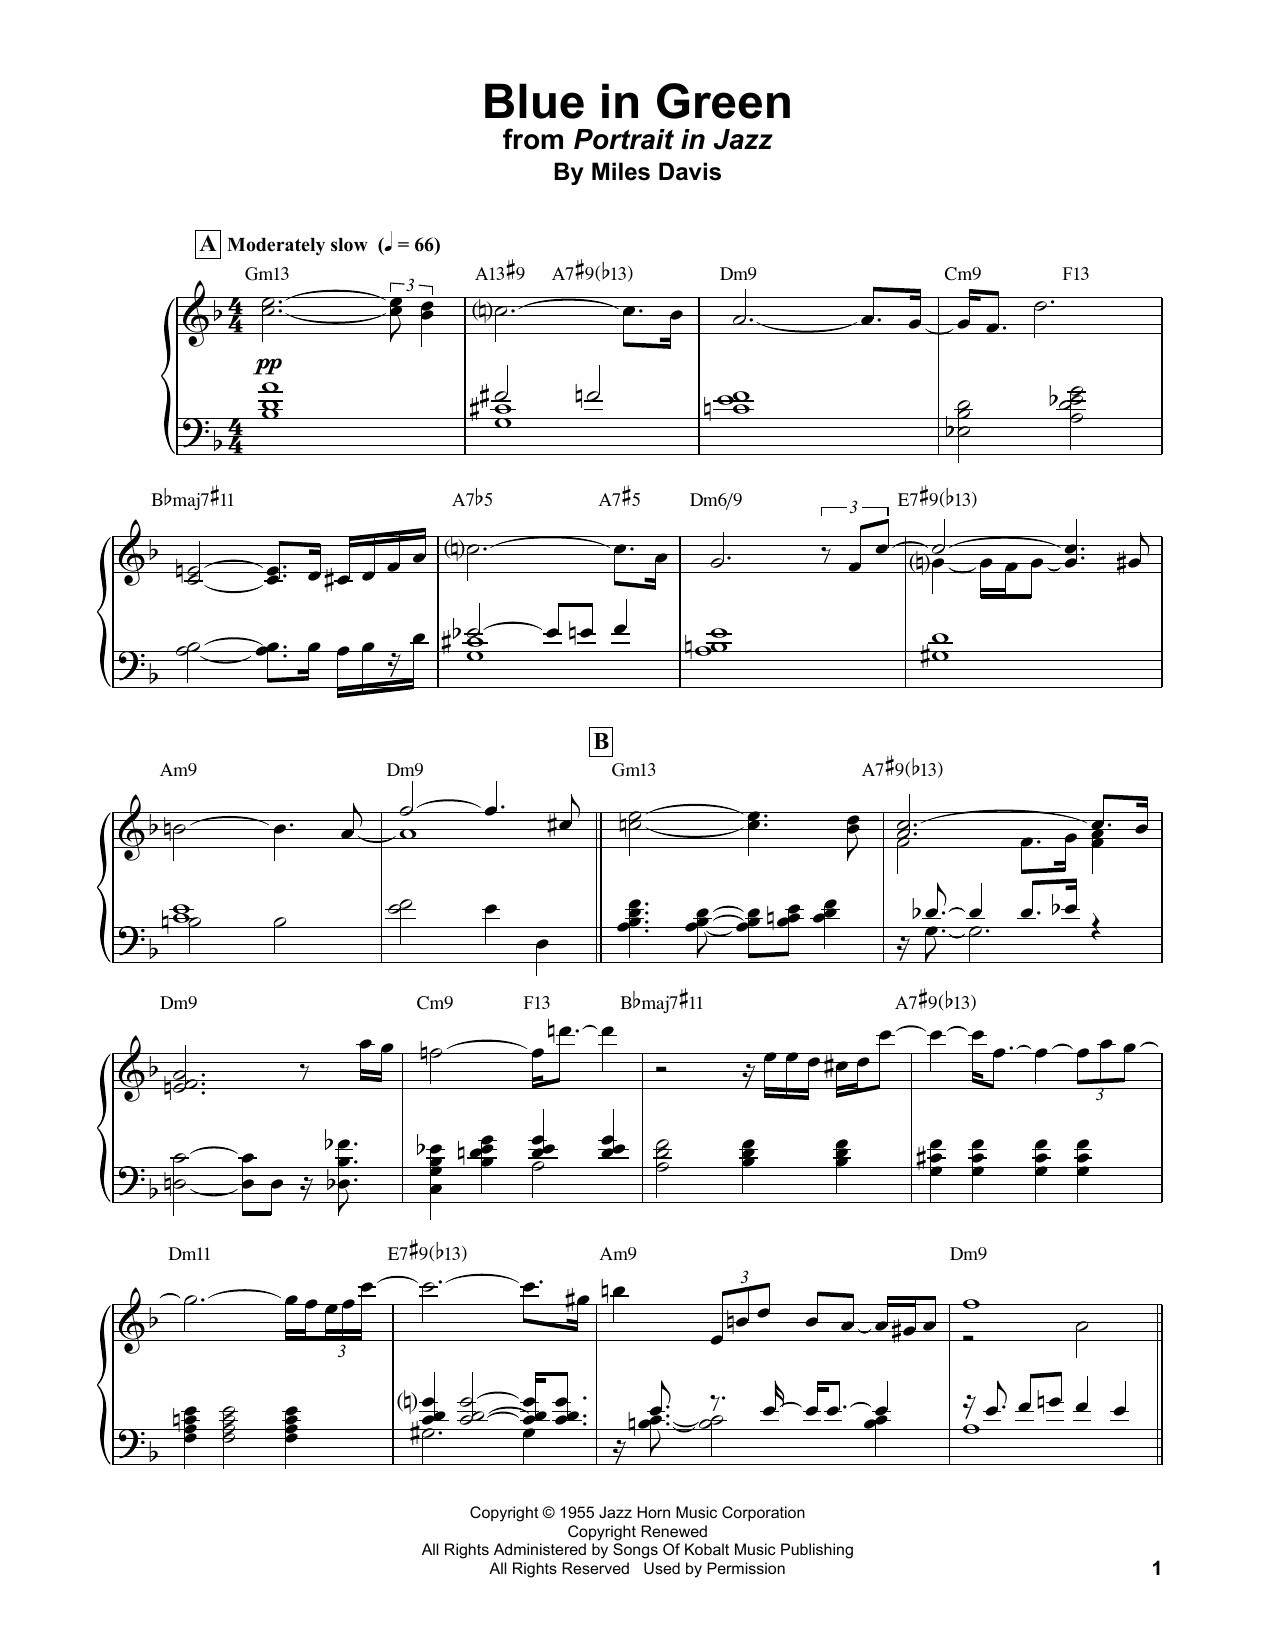 Bill Evans Blue In Green sheet music notes and chords. Download Printable PDF.